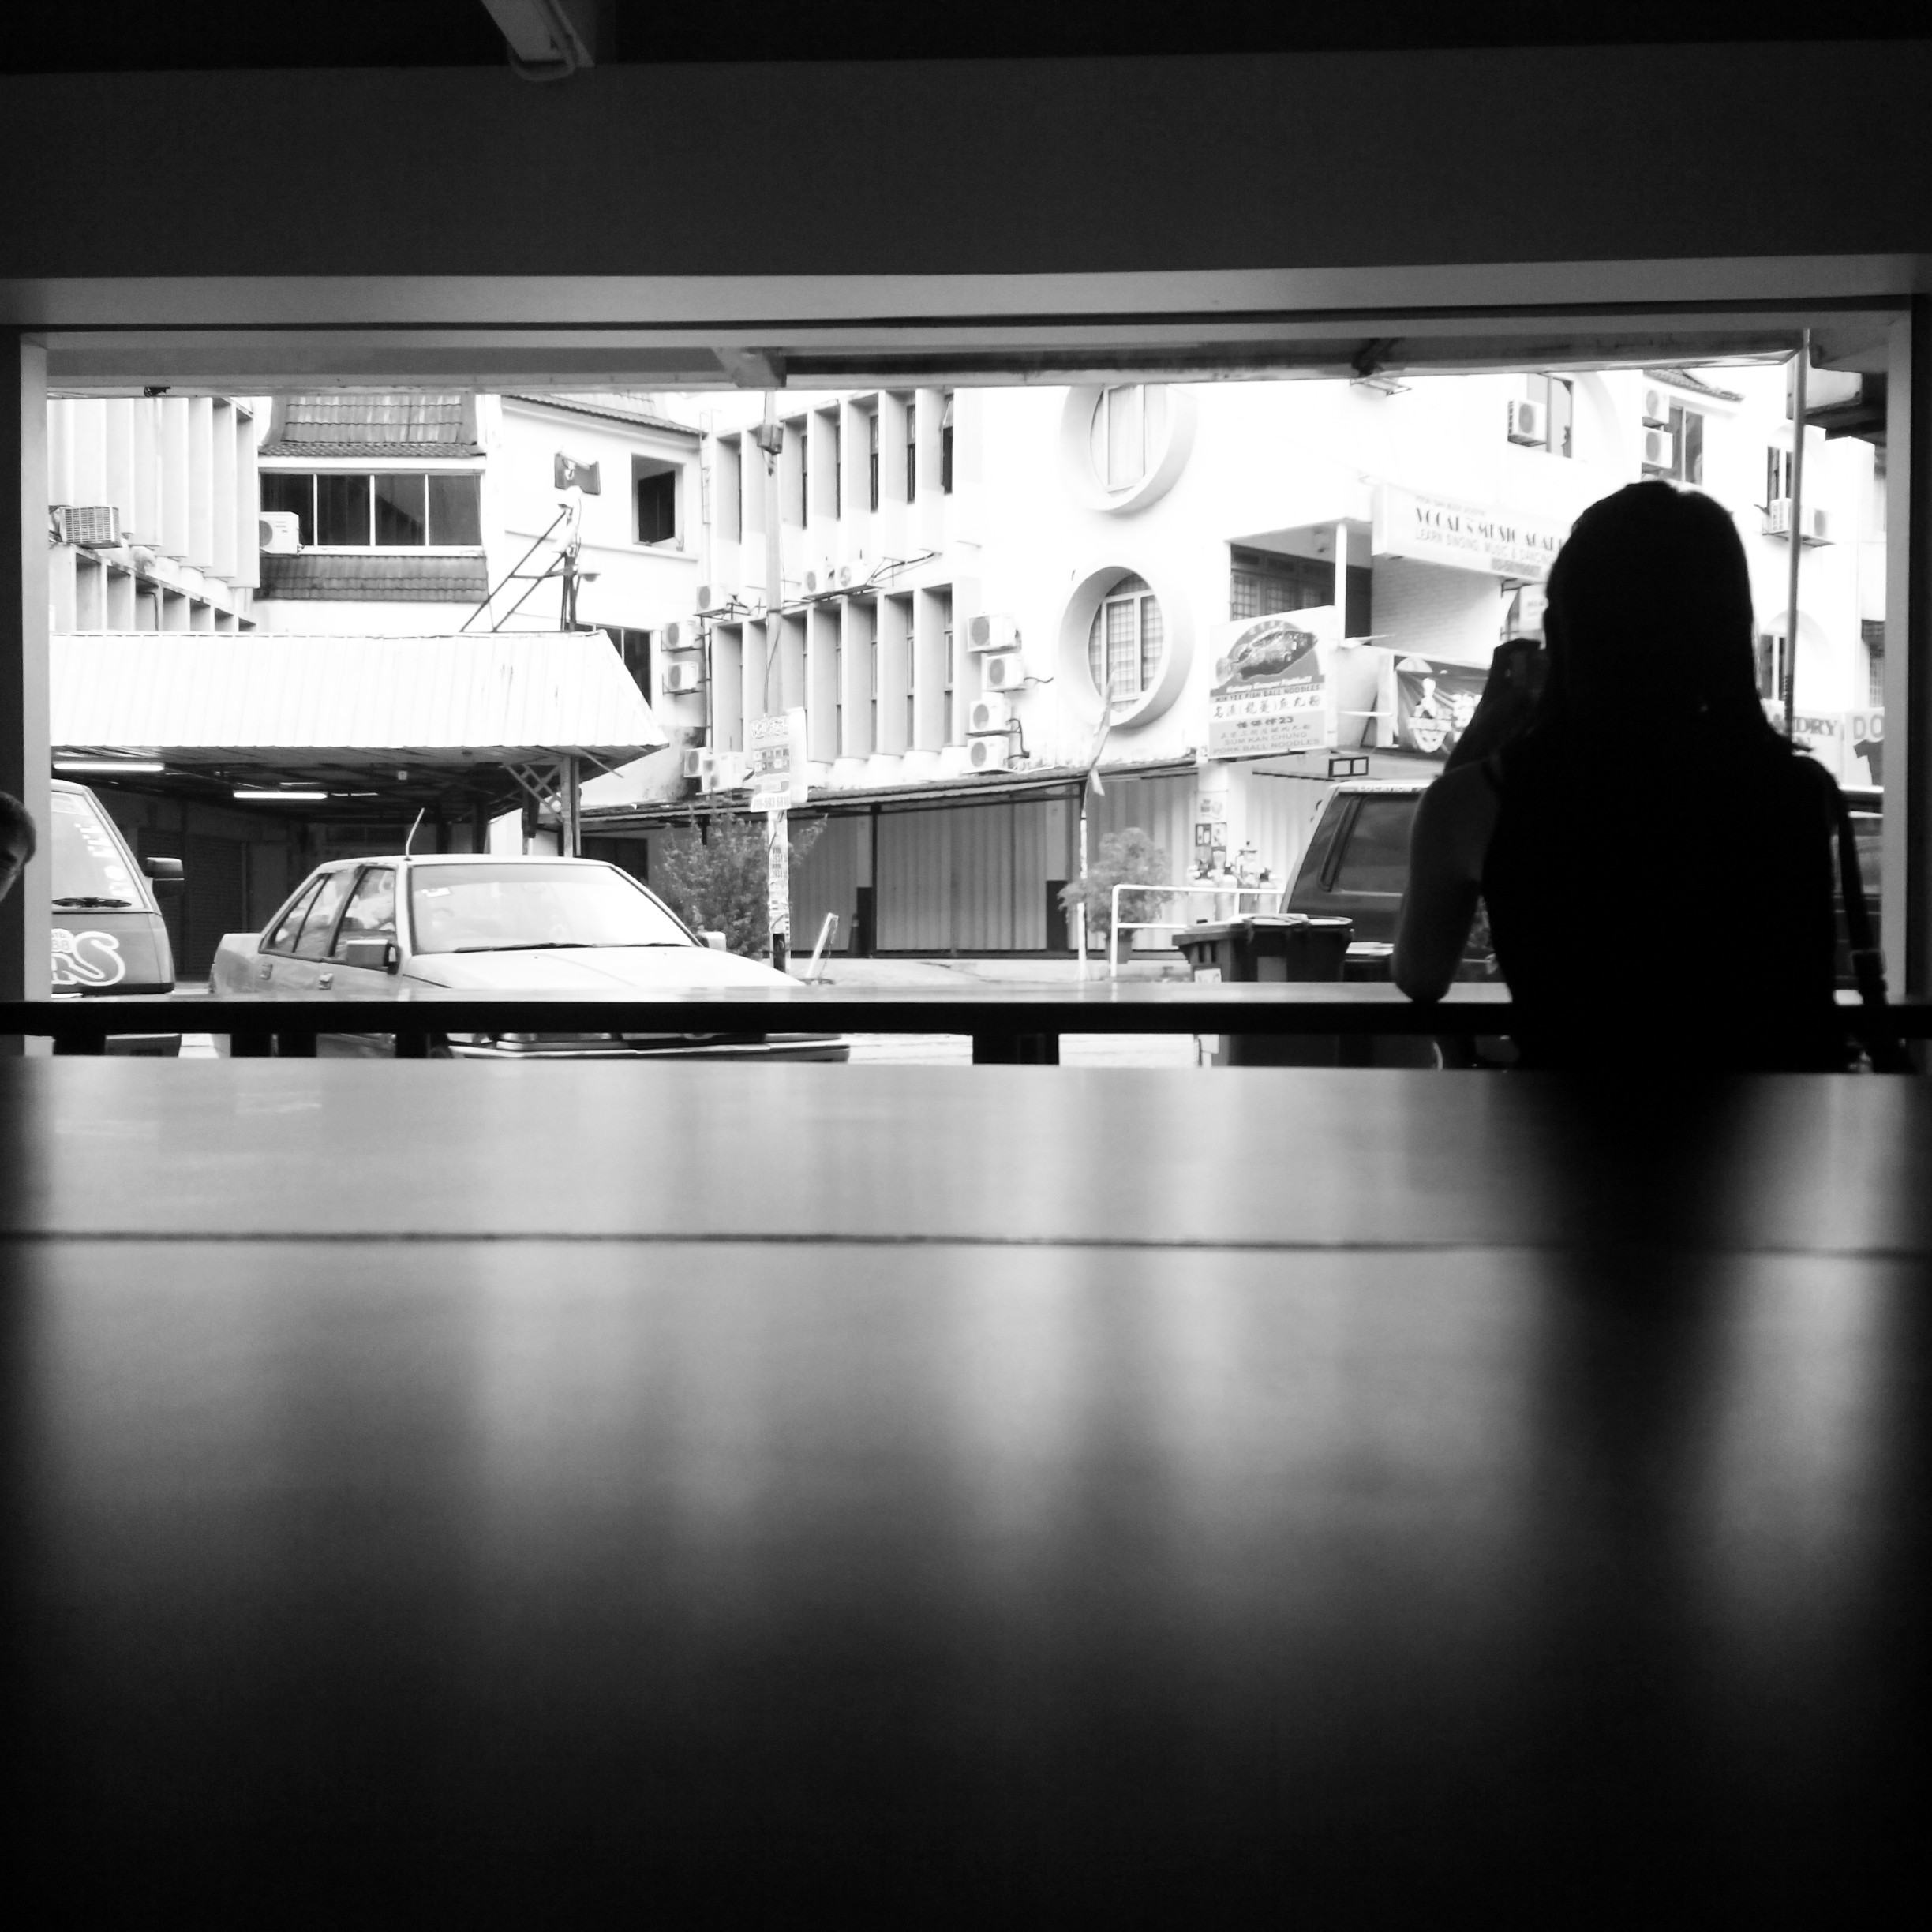 Project365 #5: Lonely